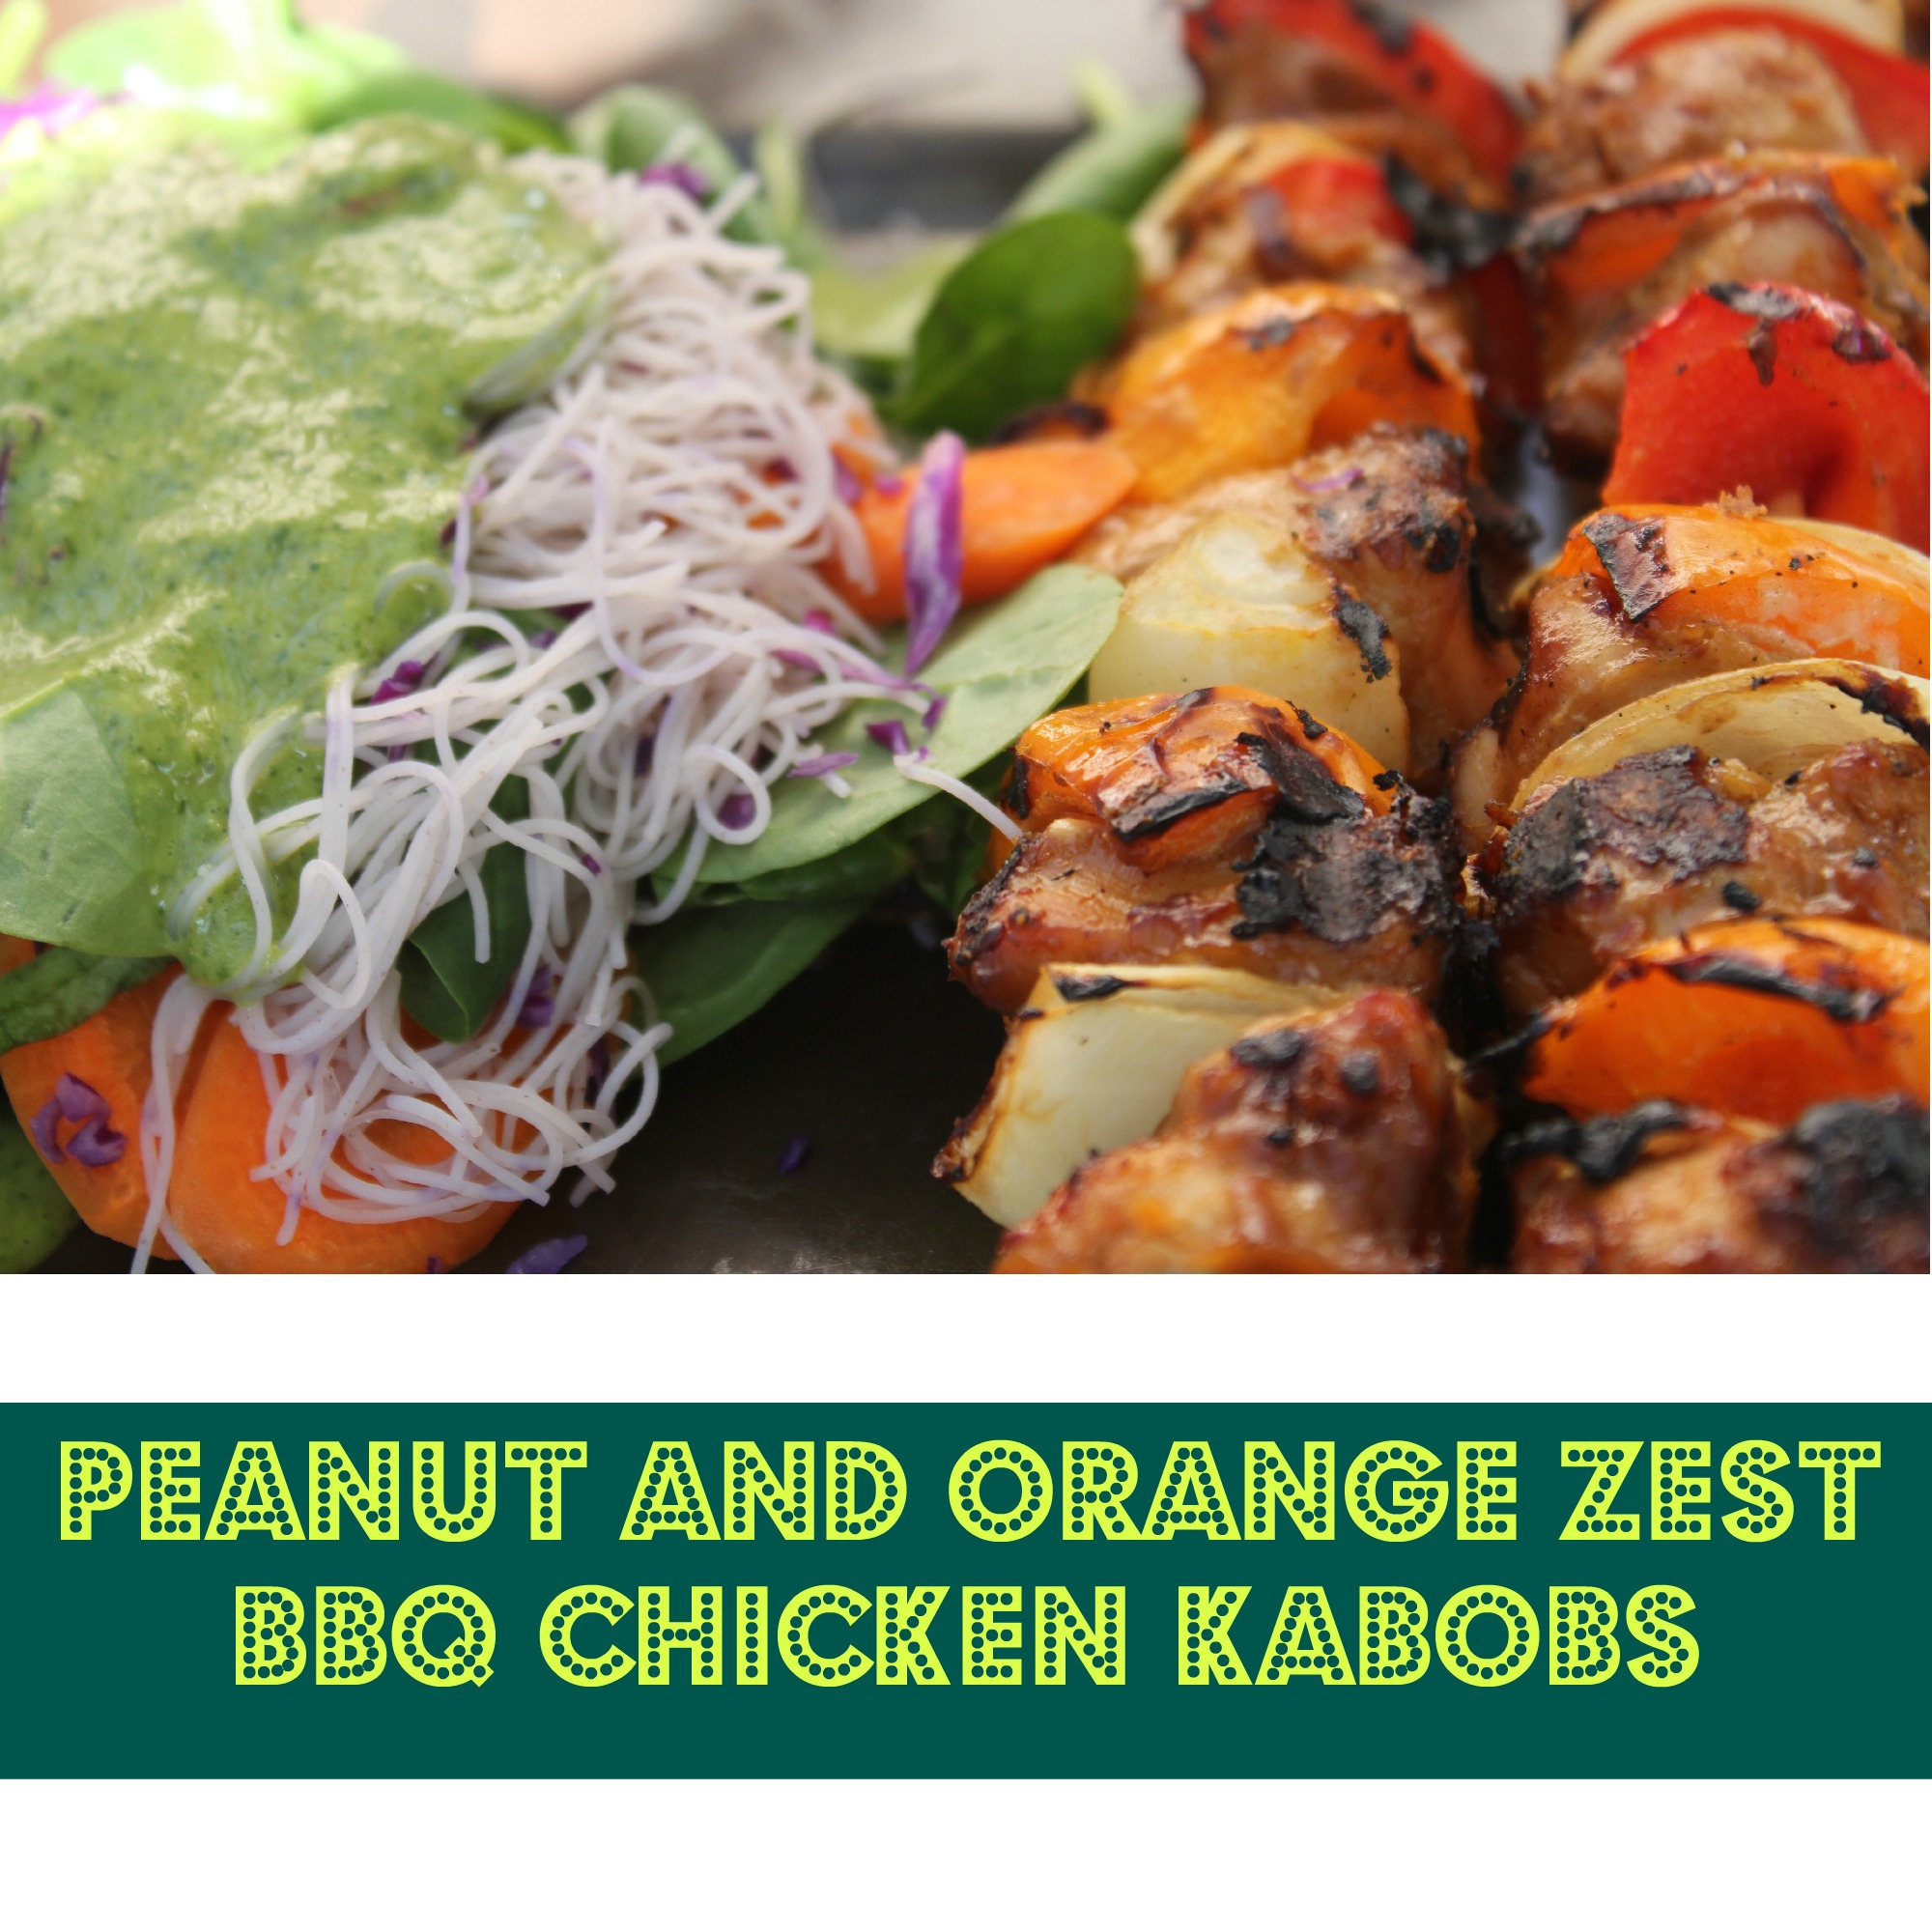 Peanut and Orange Zest BBQ Chicken Kabobs